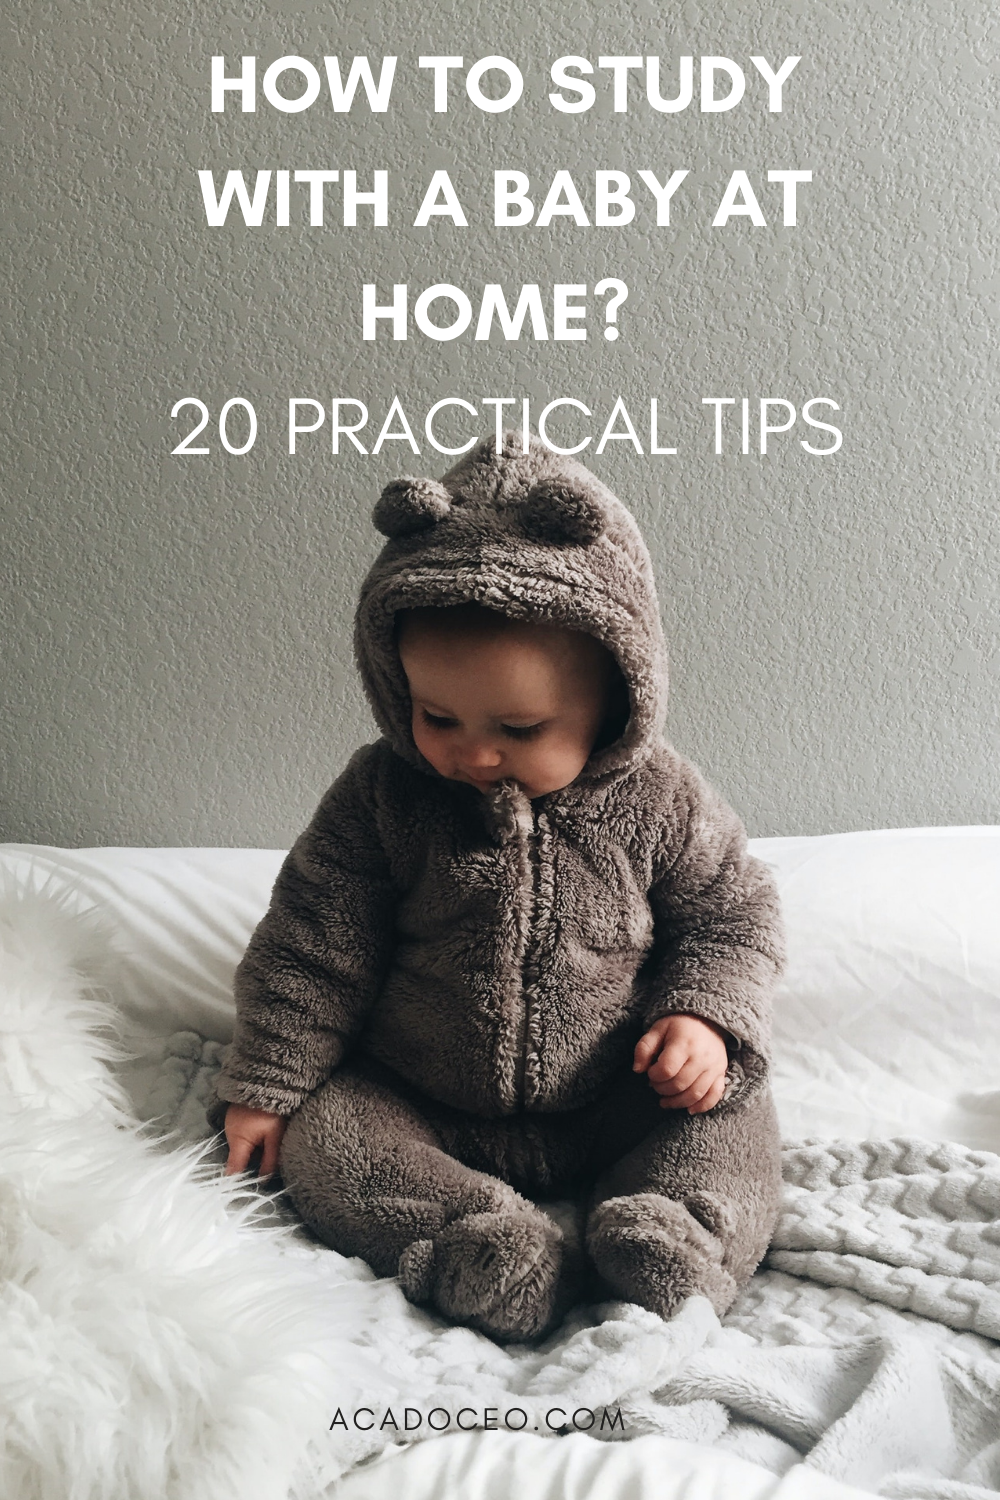 HOW TO STUDY WITH A BABY AT HOME? 20 PRACTICAL TIPS